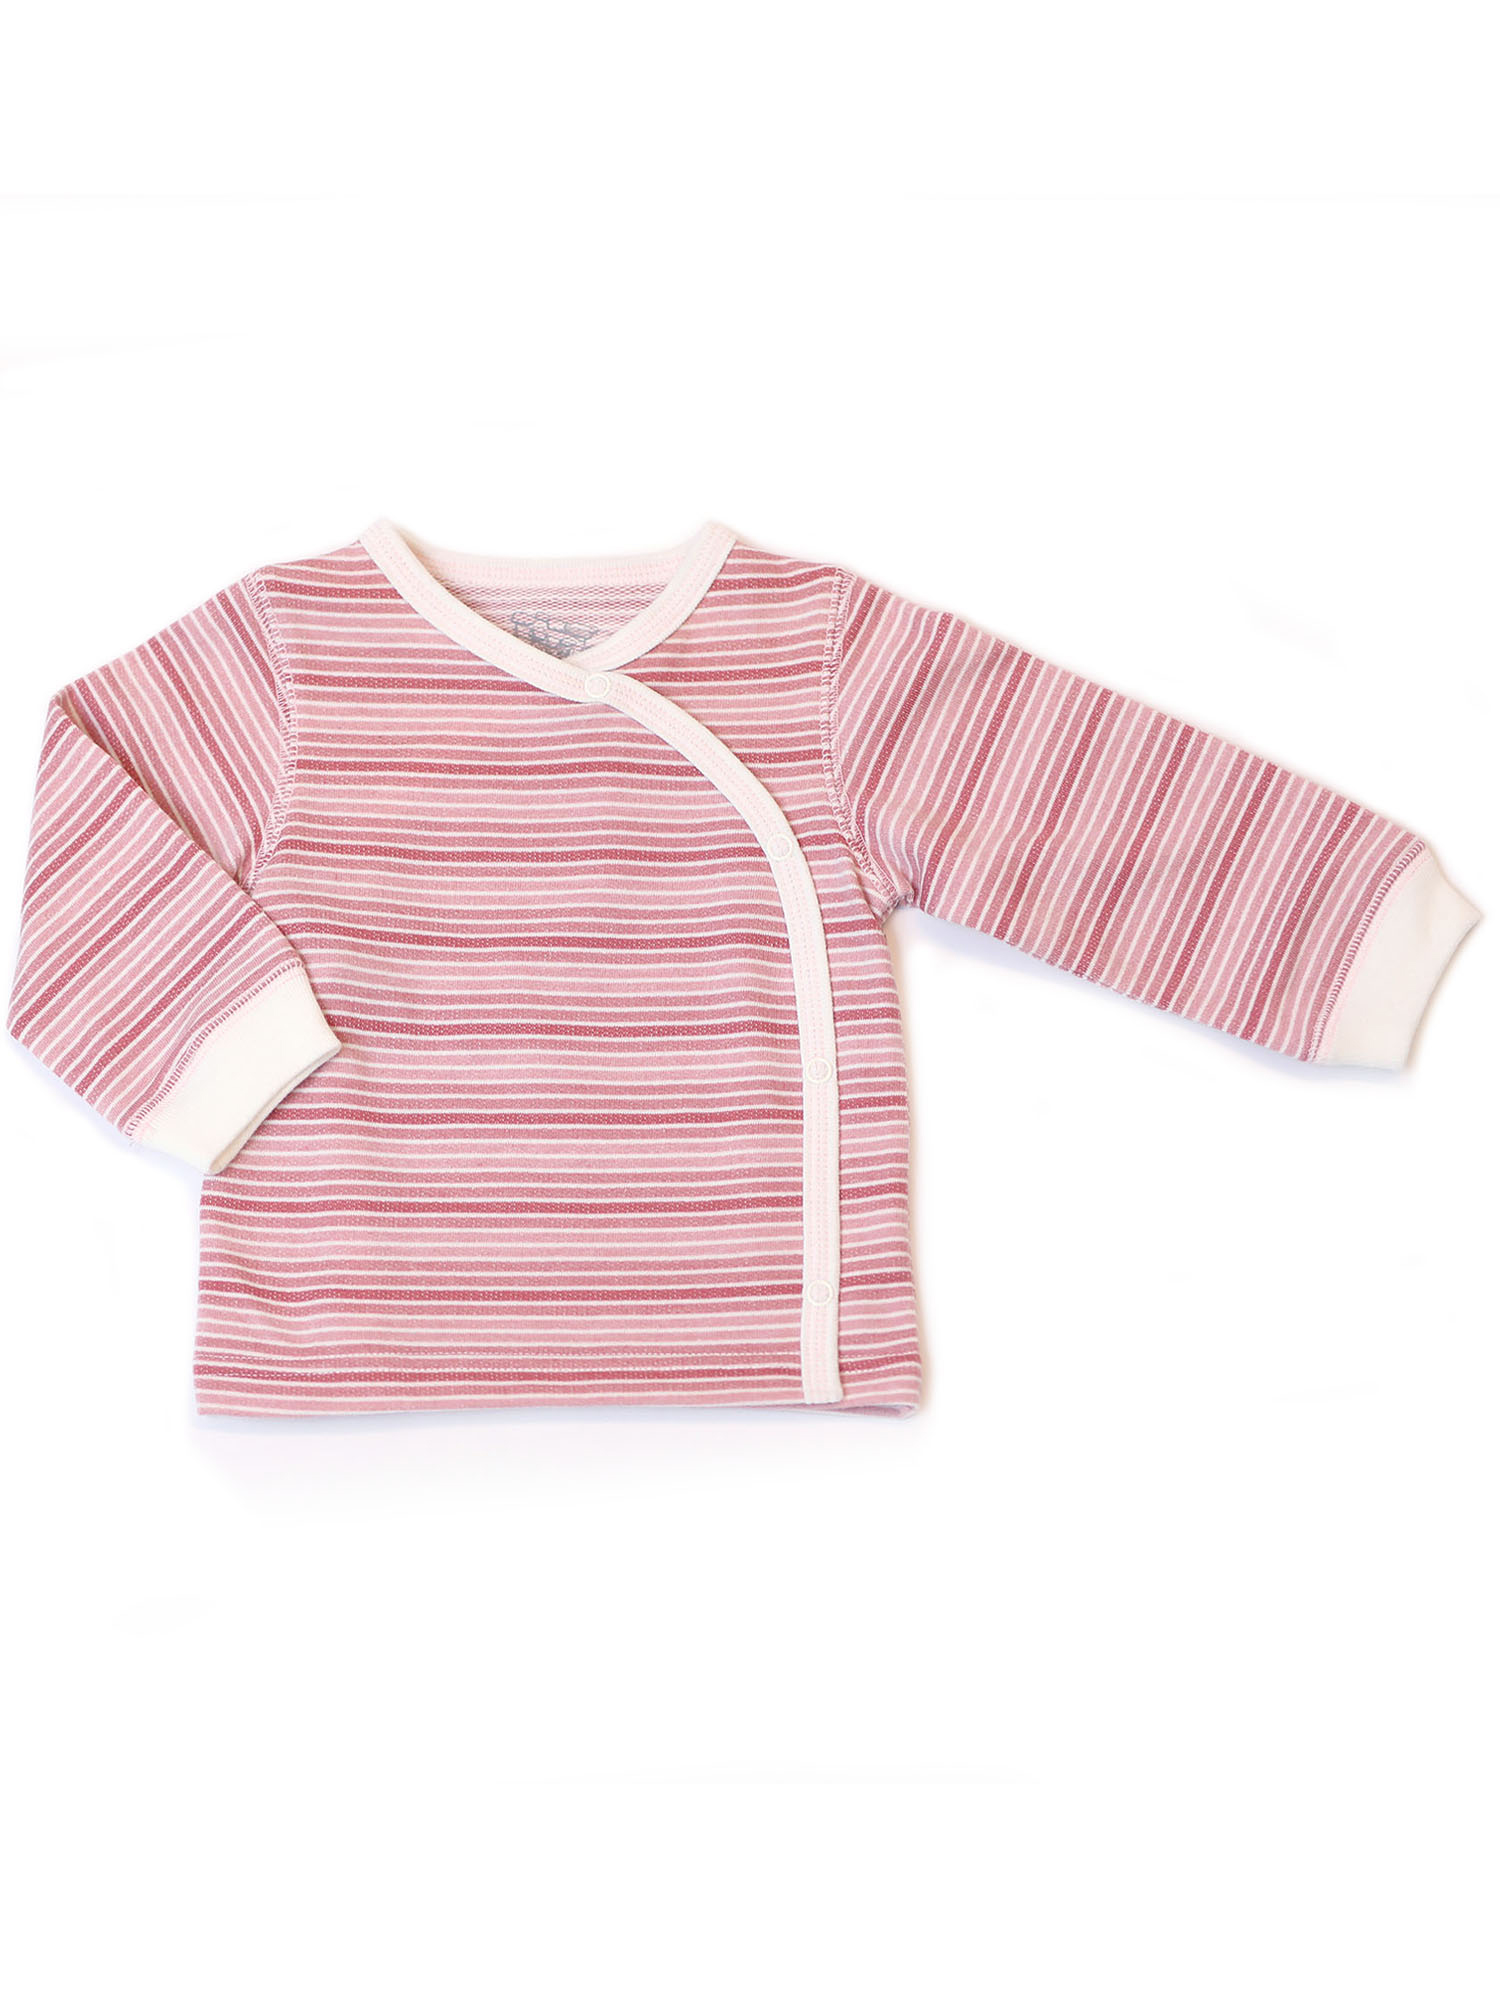 Kapital K Long Sleeve Kimono Wrap Cardigan Top (Baby Girls)